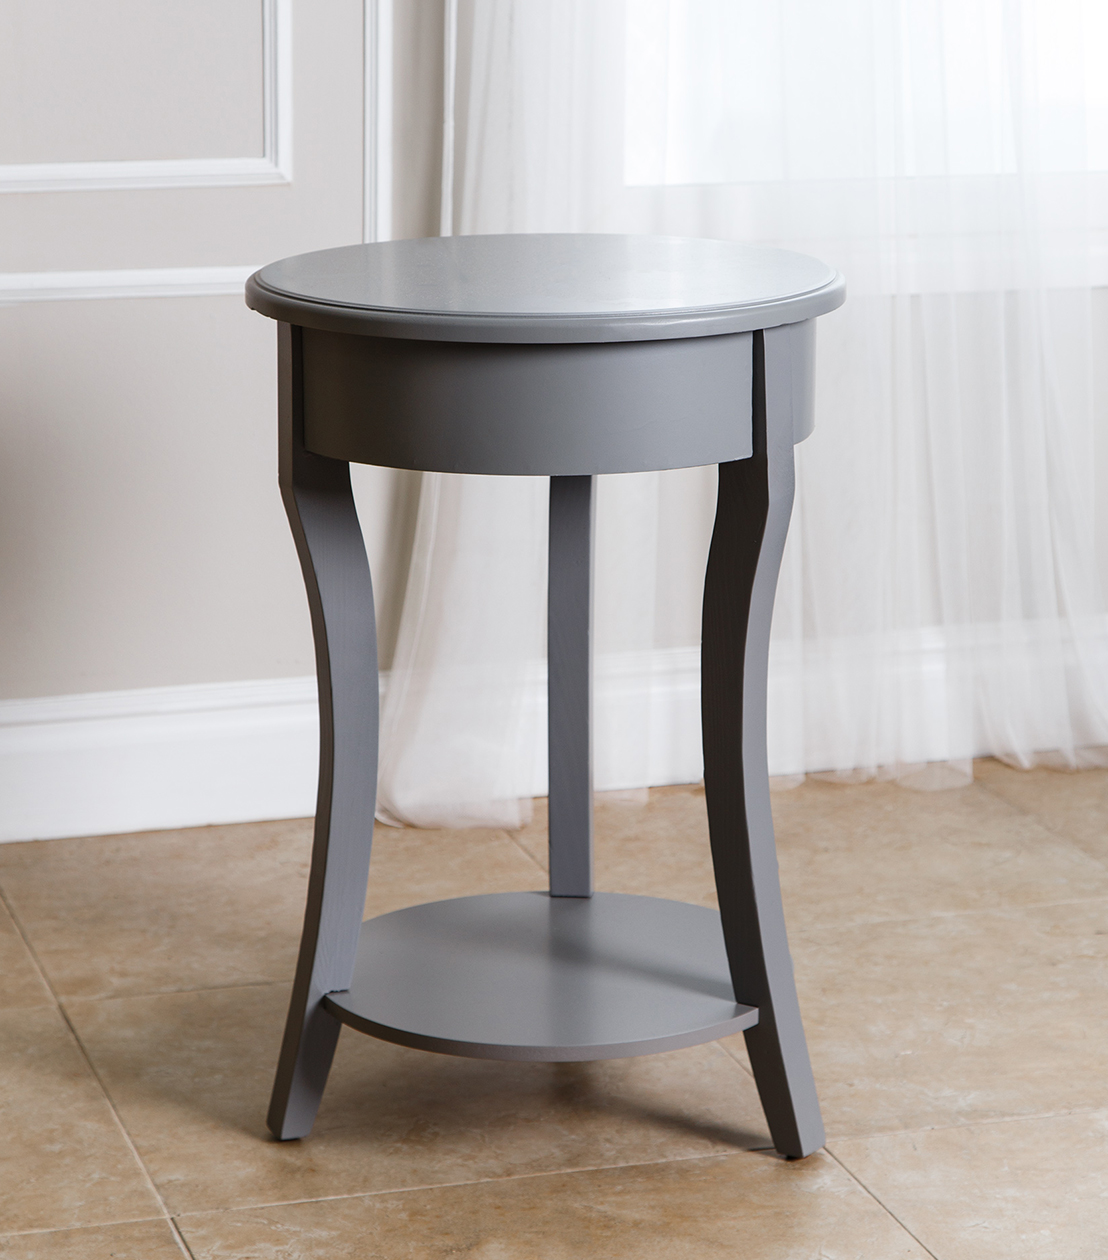 accent tables taylor wood end table navy stlblu round silver tiffany reading lamp bedroom furniture square ott coffee black mirrored nightstand wine rack and chairs carpet